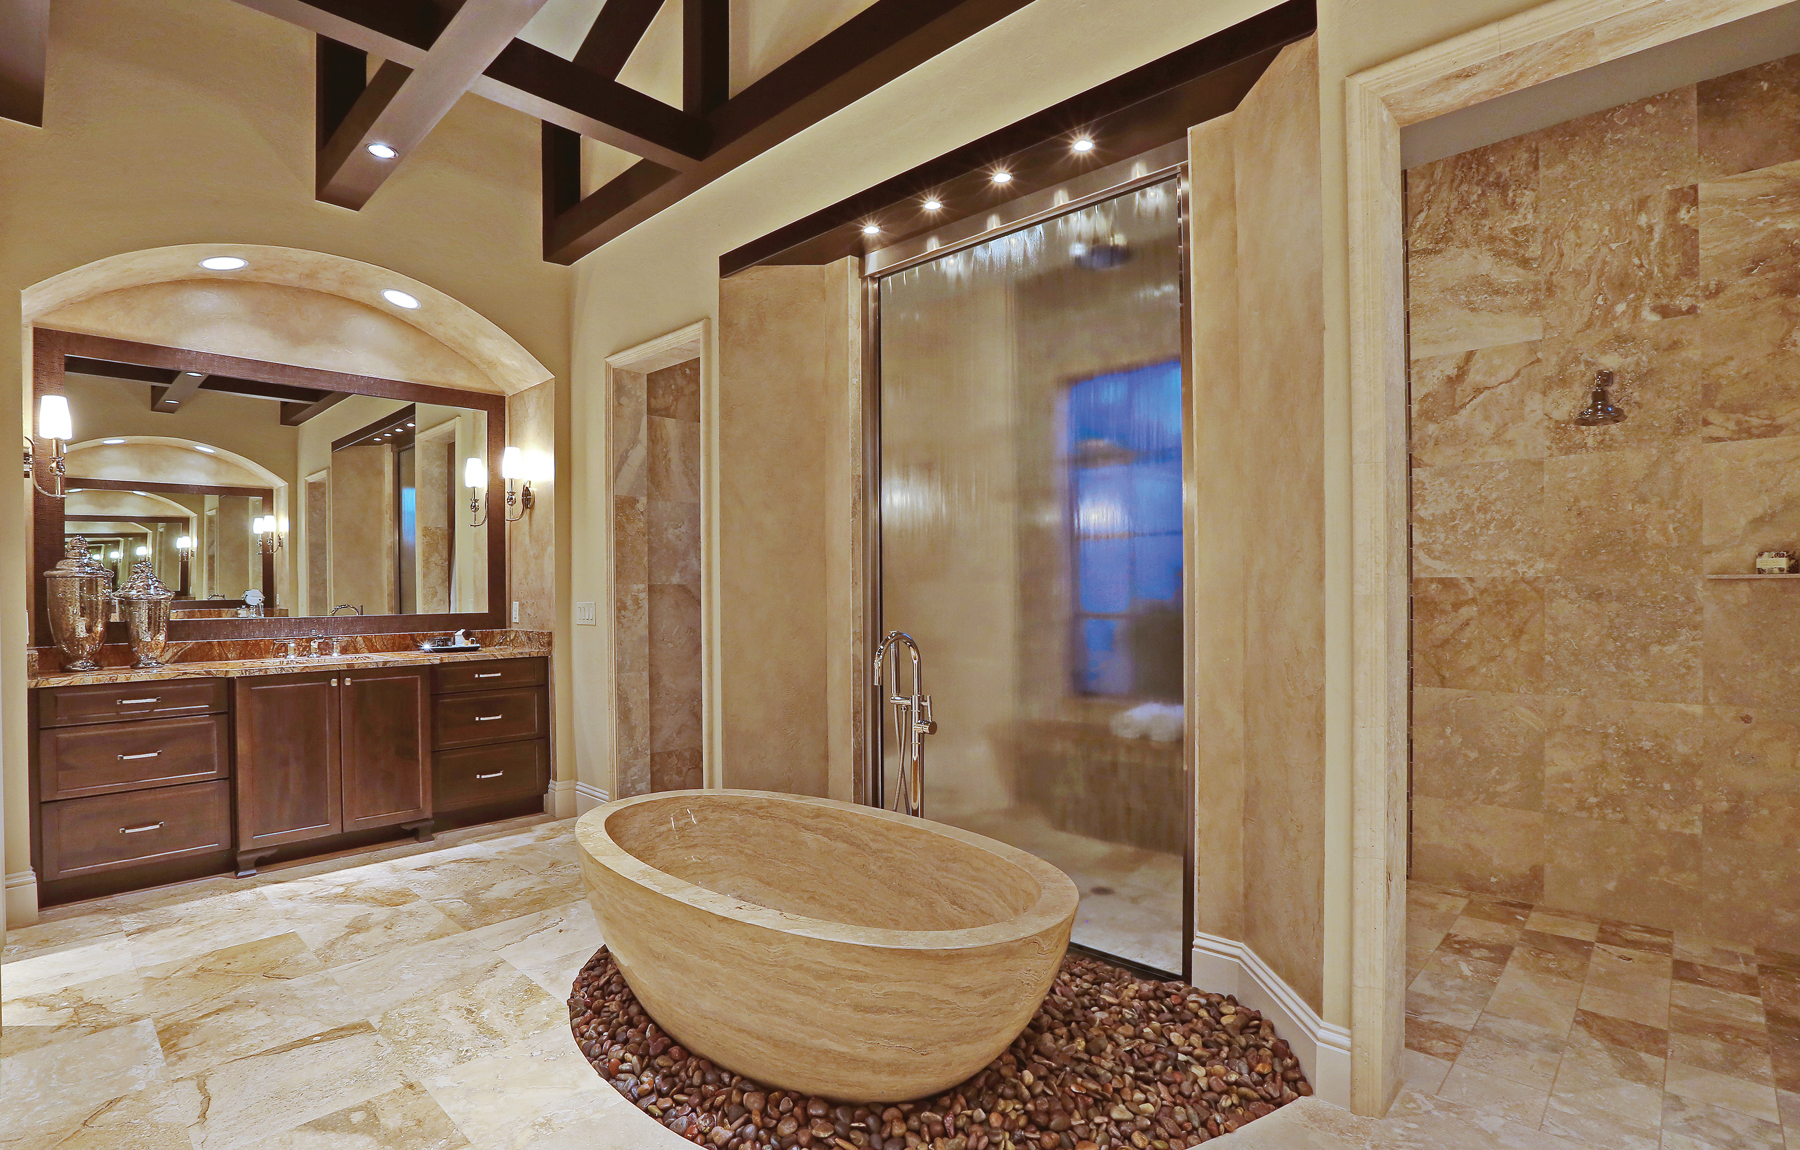 The Avianna John Cannon Homes master bath